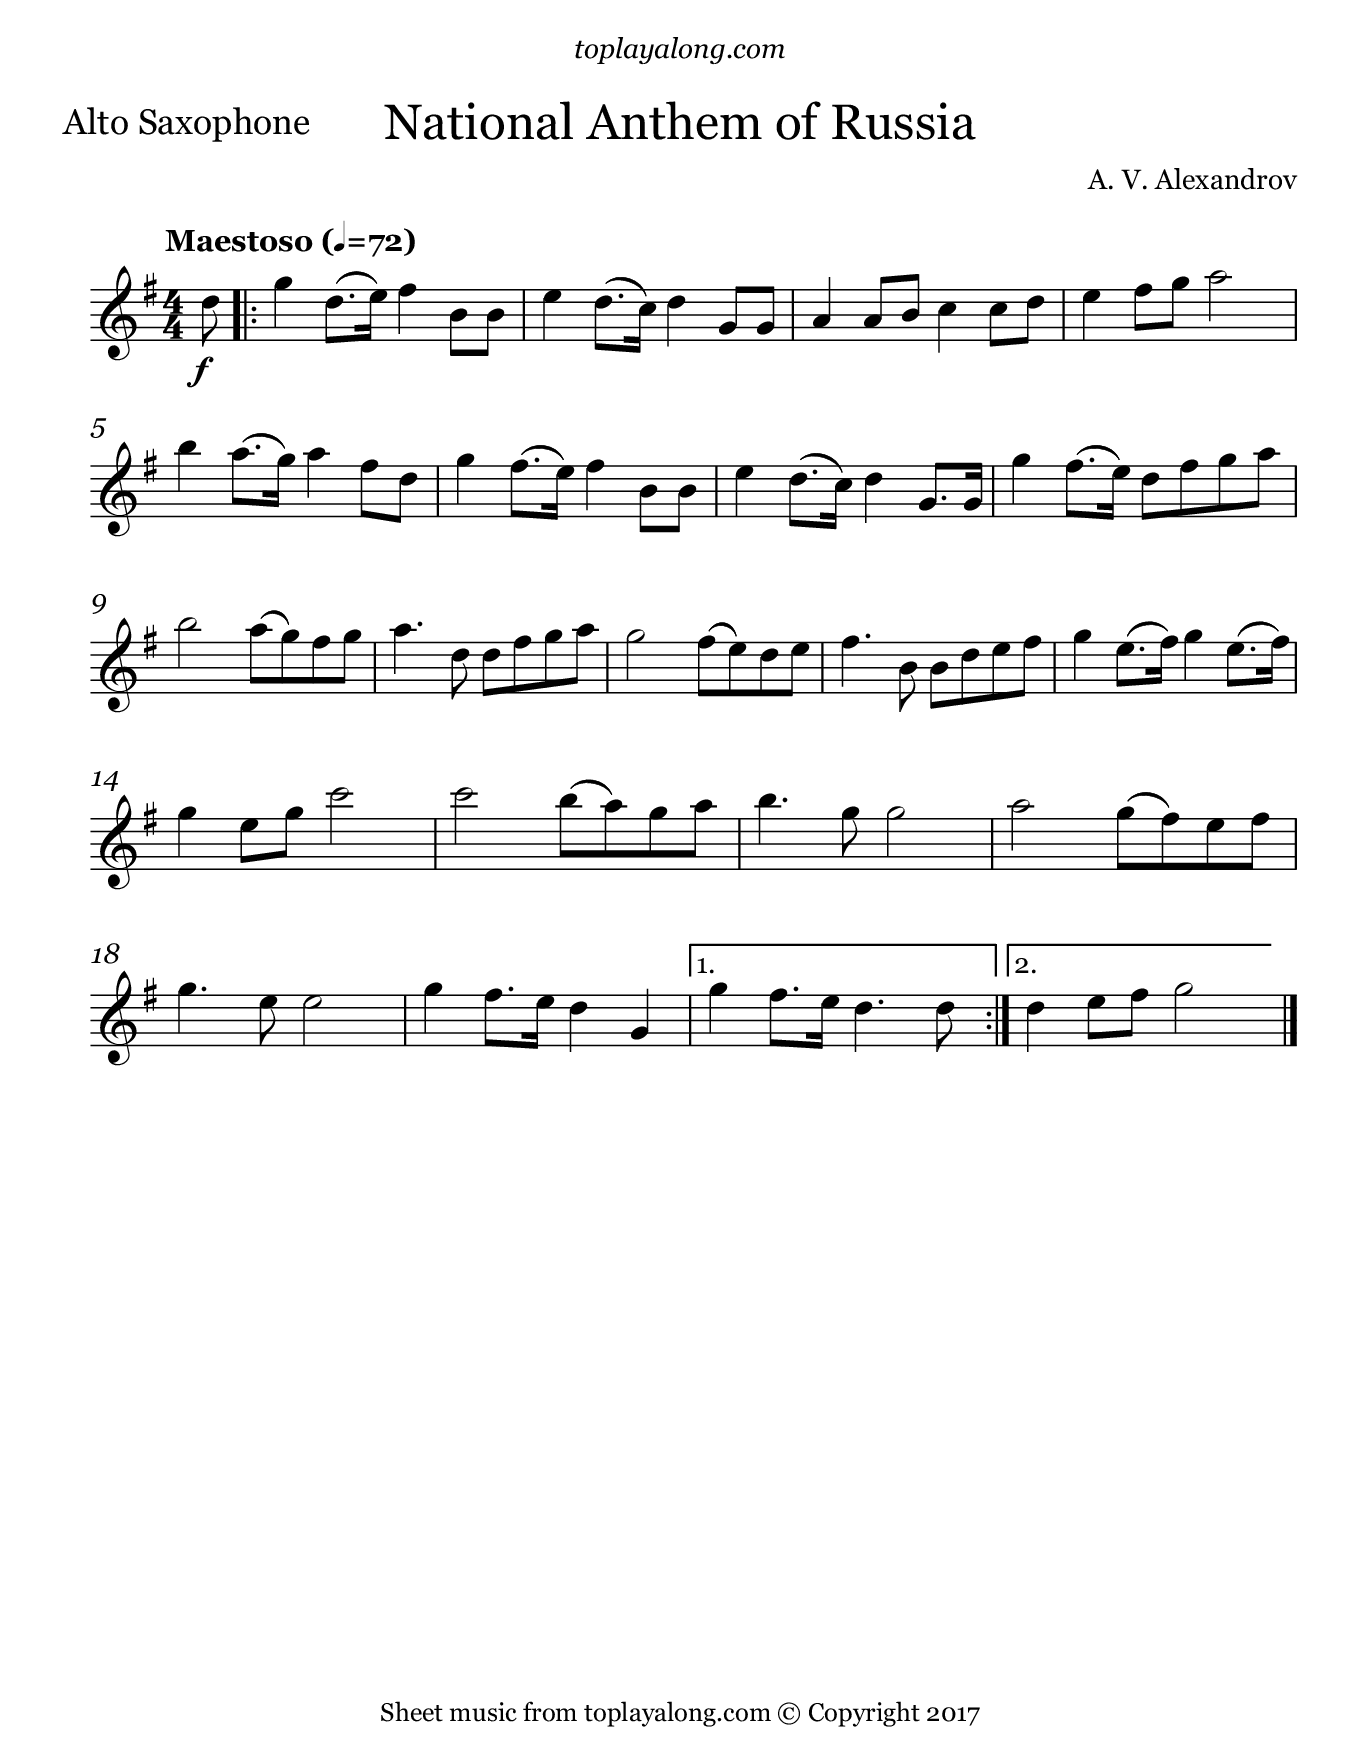 National Anthem of Russia. Sheet music for Alto Sax, page 1.